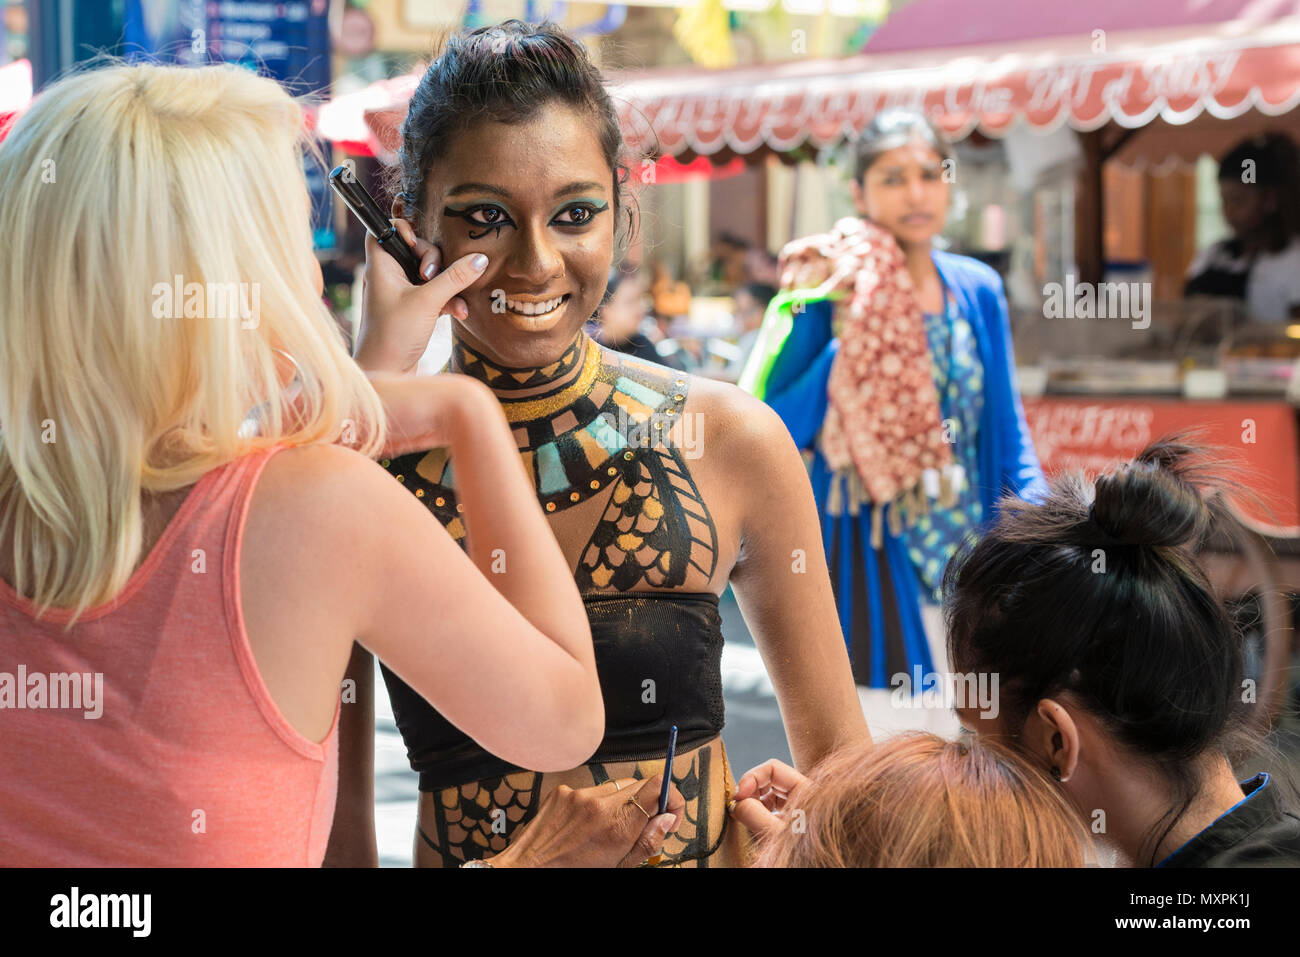 A public demonstration of face and body painting,  part of the 'Salon Fam De'Zil'. Caudan Waterfront, Port Louis, Mauritius. - Stock Image